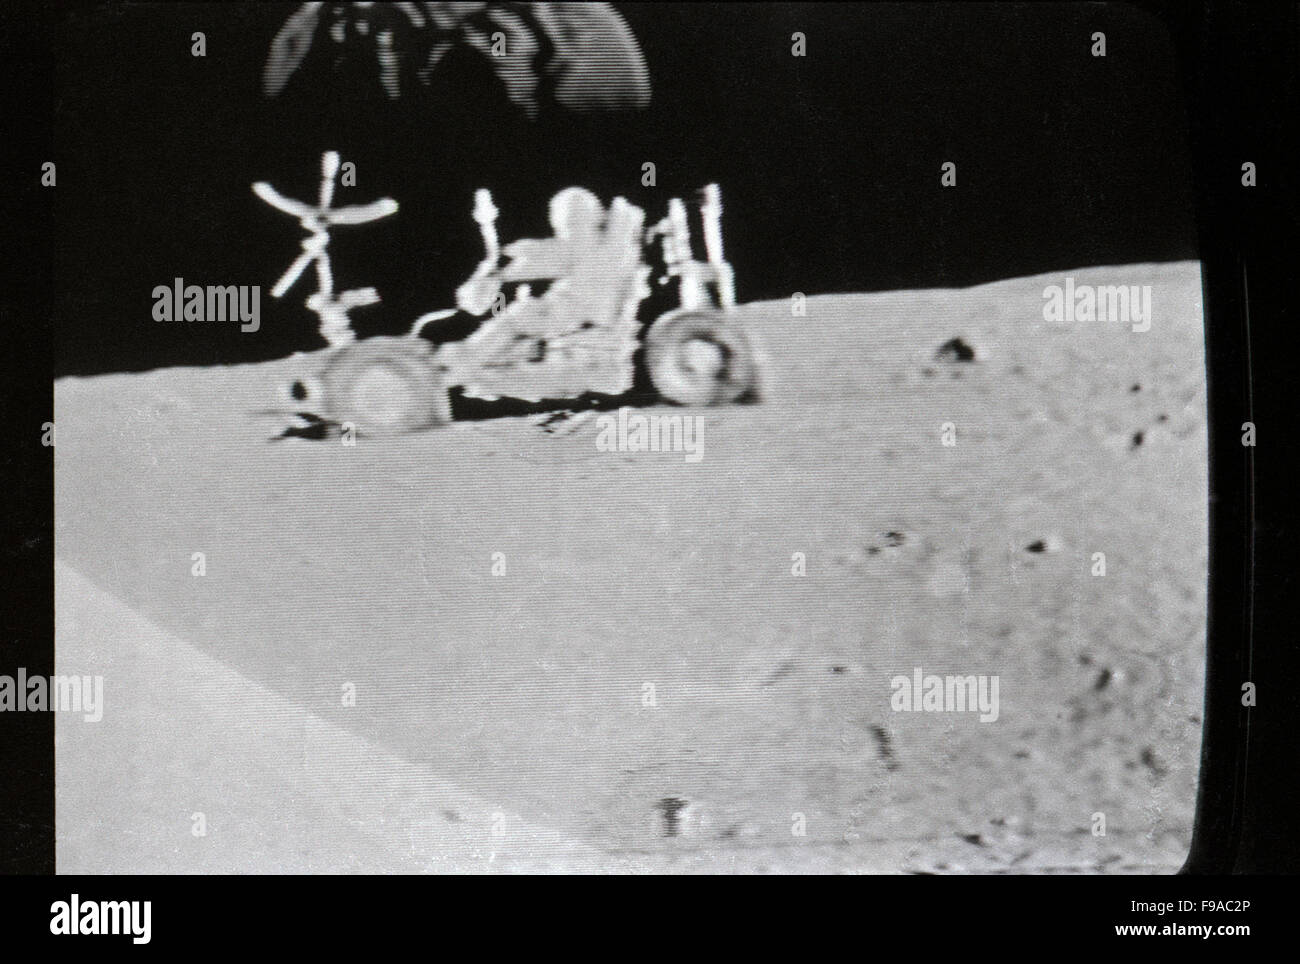 Apollo 11 Moon Landing 20 July 1969 Photographed In Actual Time On The Television Los Angeles California KATHY DEWITT